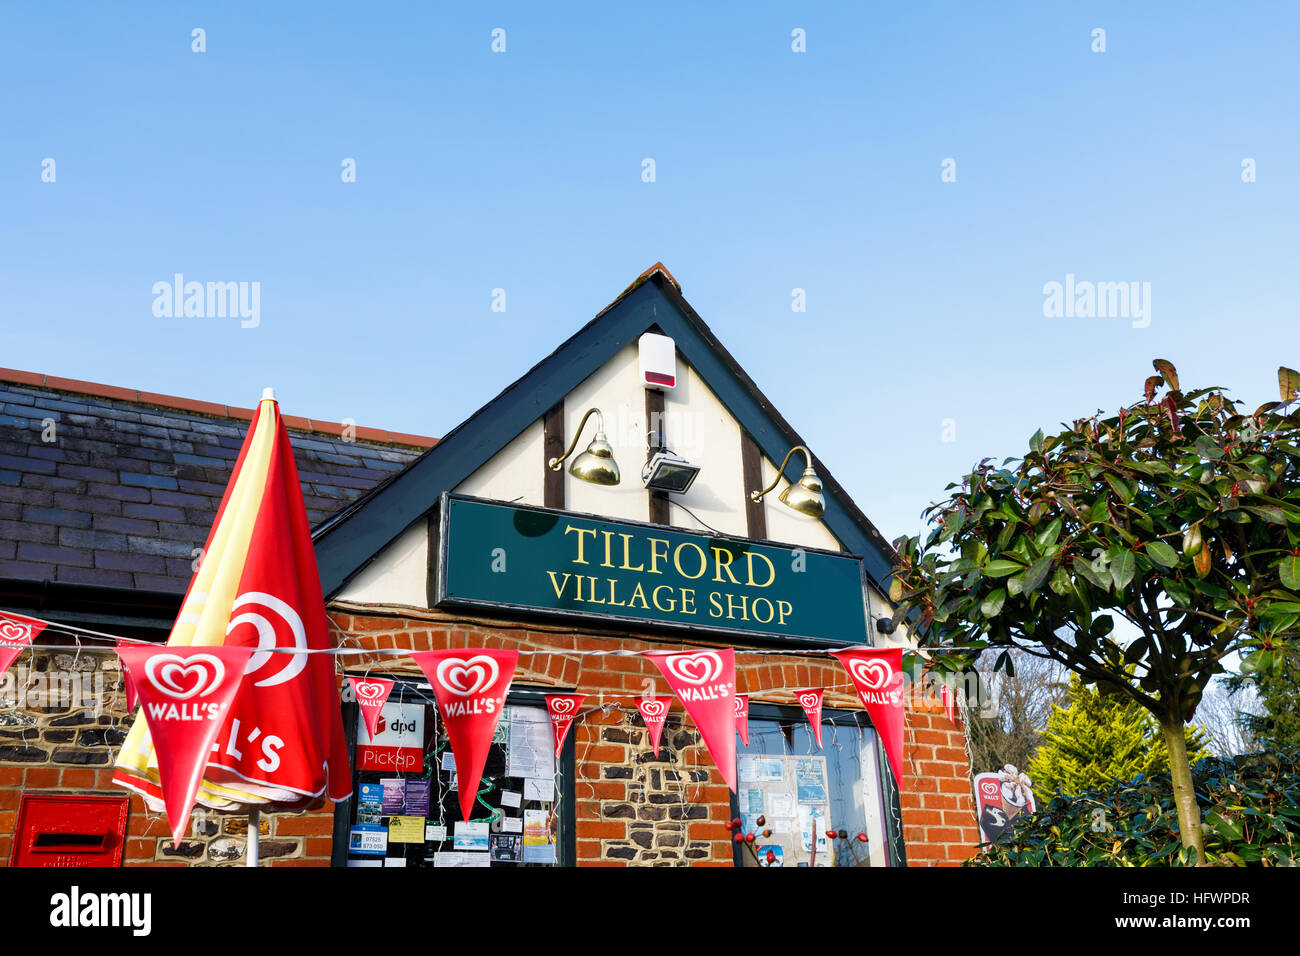 Exterior of Tilford village shop, Tilford, near Farnham, Surrey, UK - Stock Image